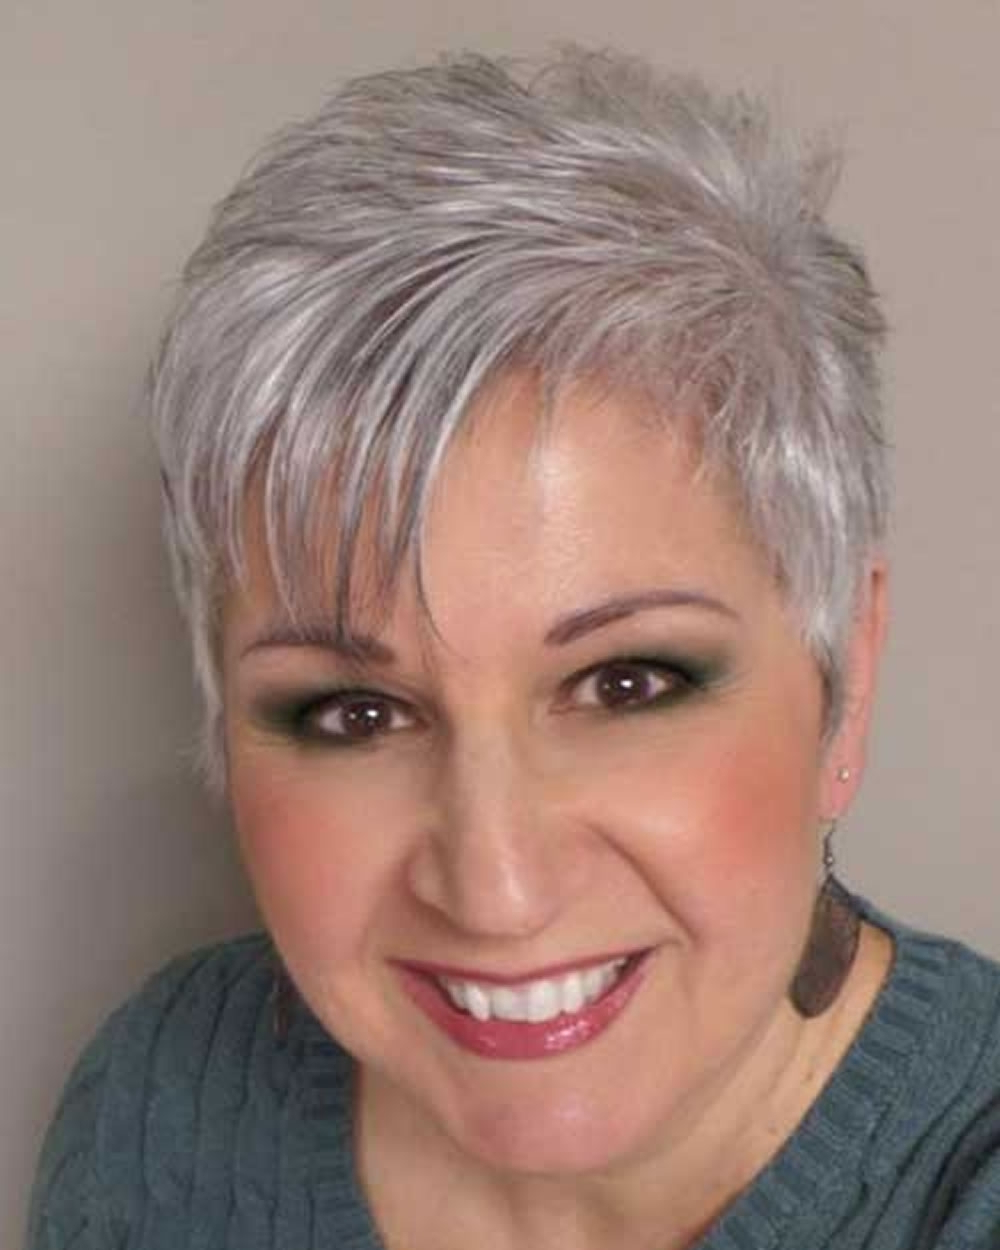 50S Hairstyles For Short Hair | All Hairstyles With Short Hair For Over 50S (View 23 of 25)